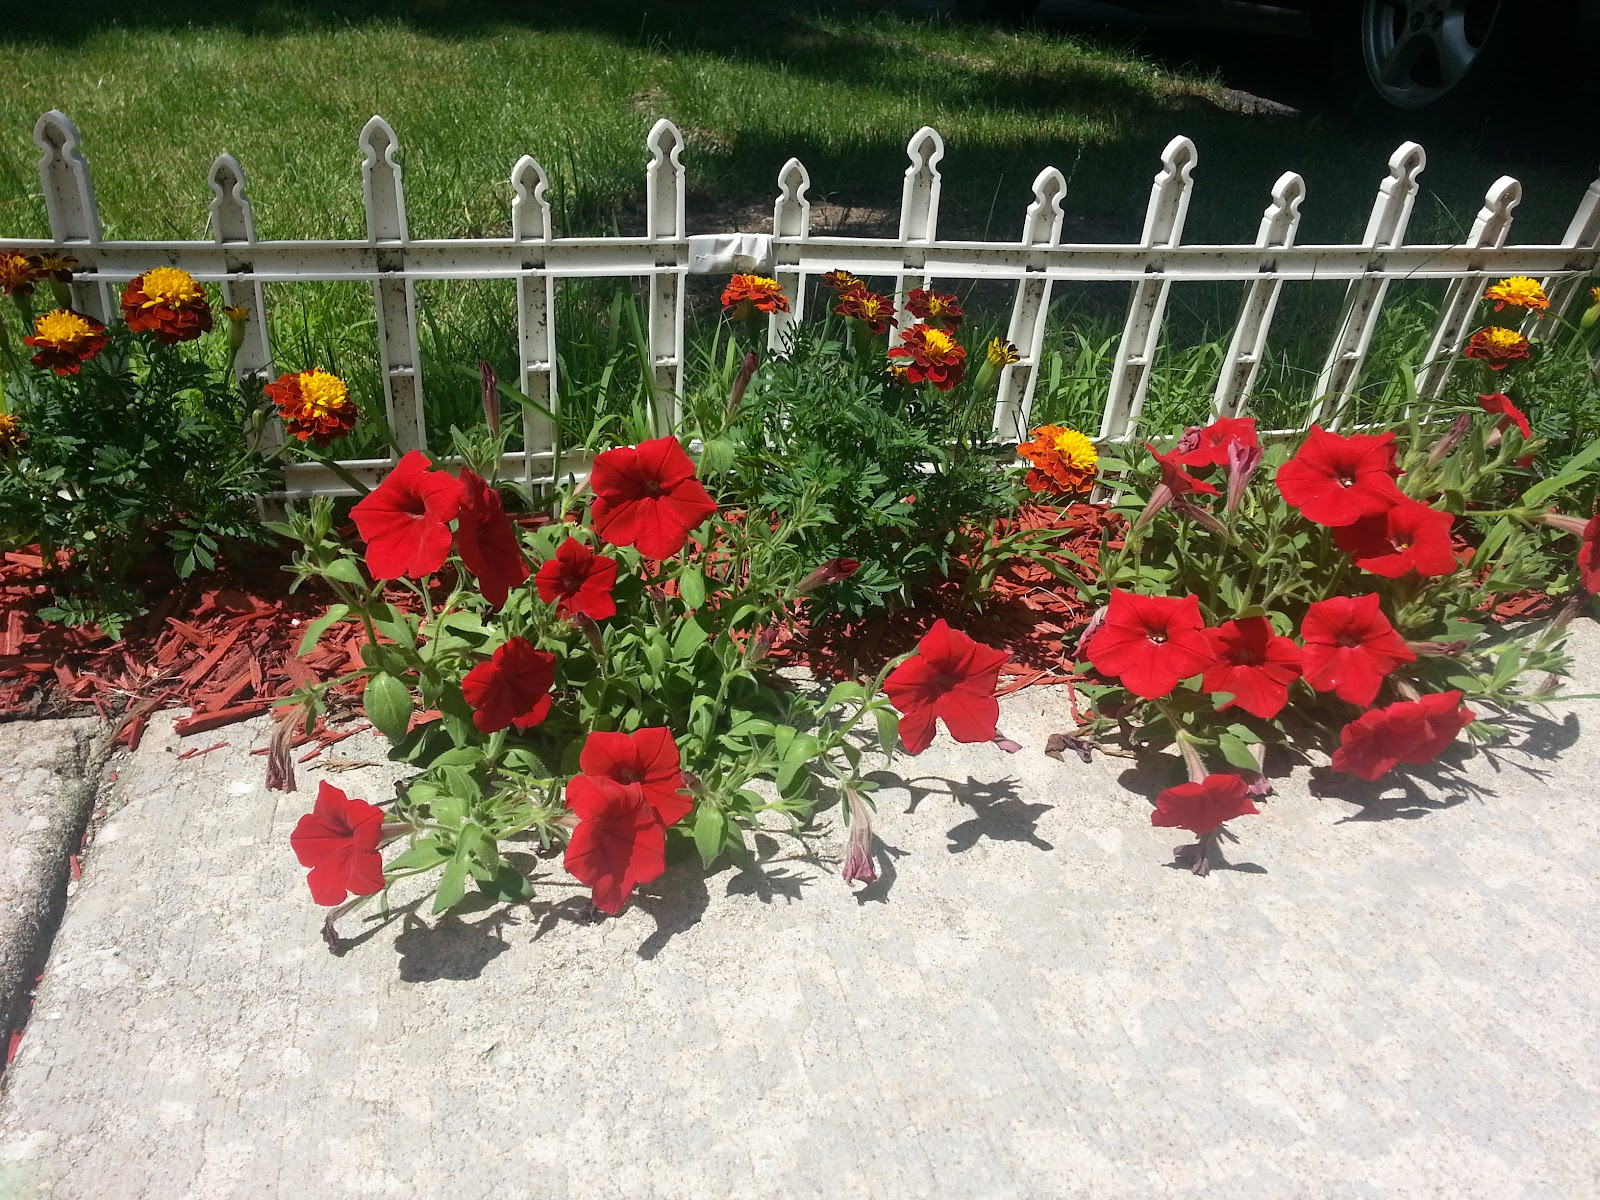 red wave petunias & marigolds picture